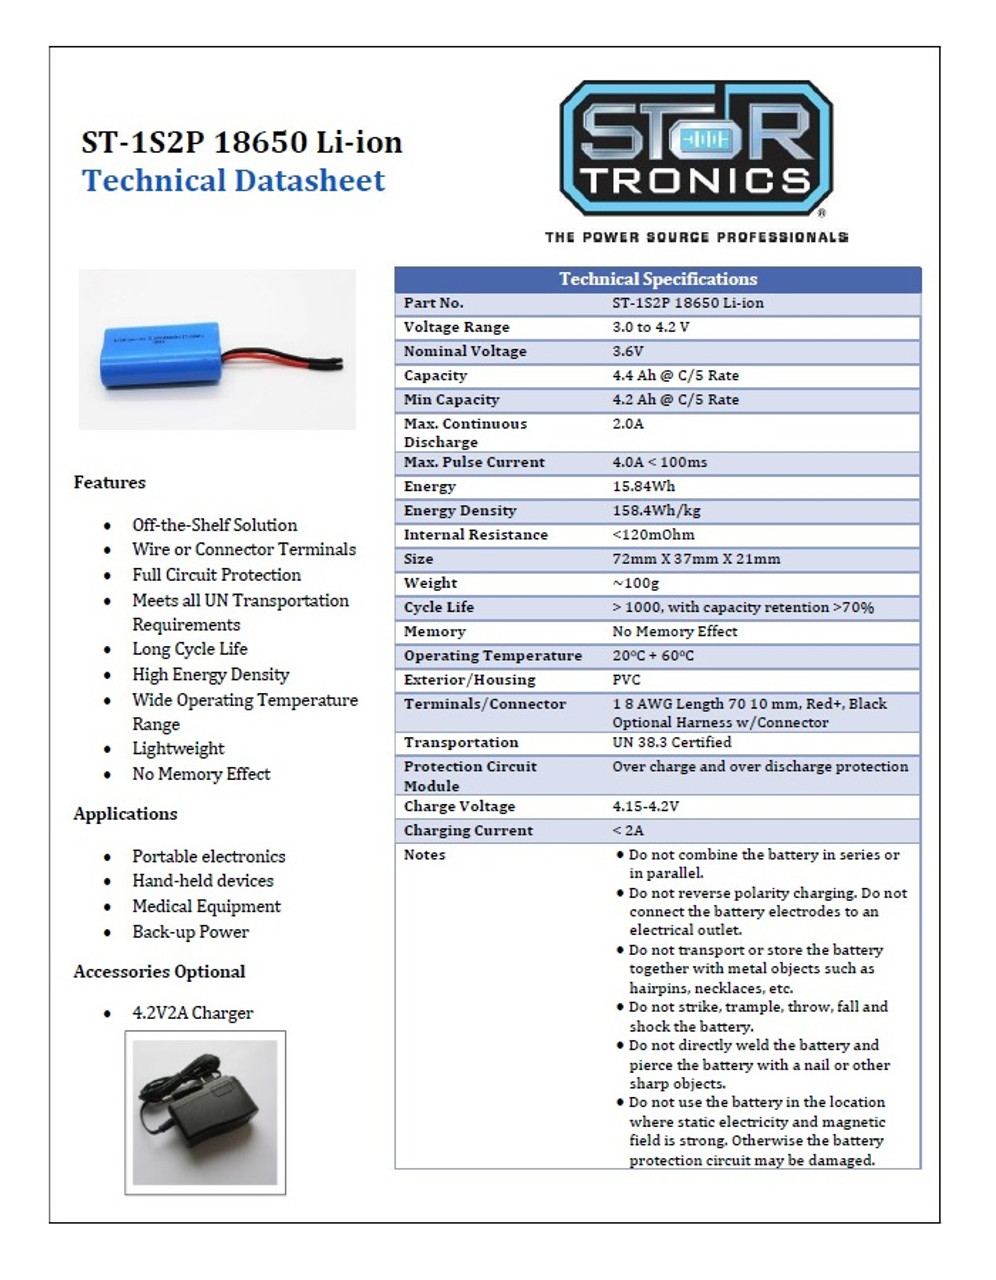 StorTronics ST-1S2P, 18650 Li-ion Battery Pack Specification Sheet